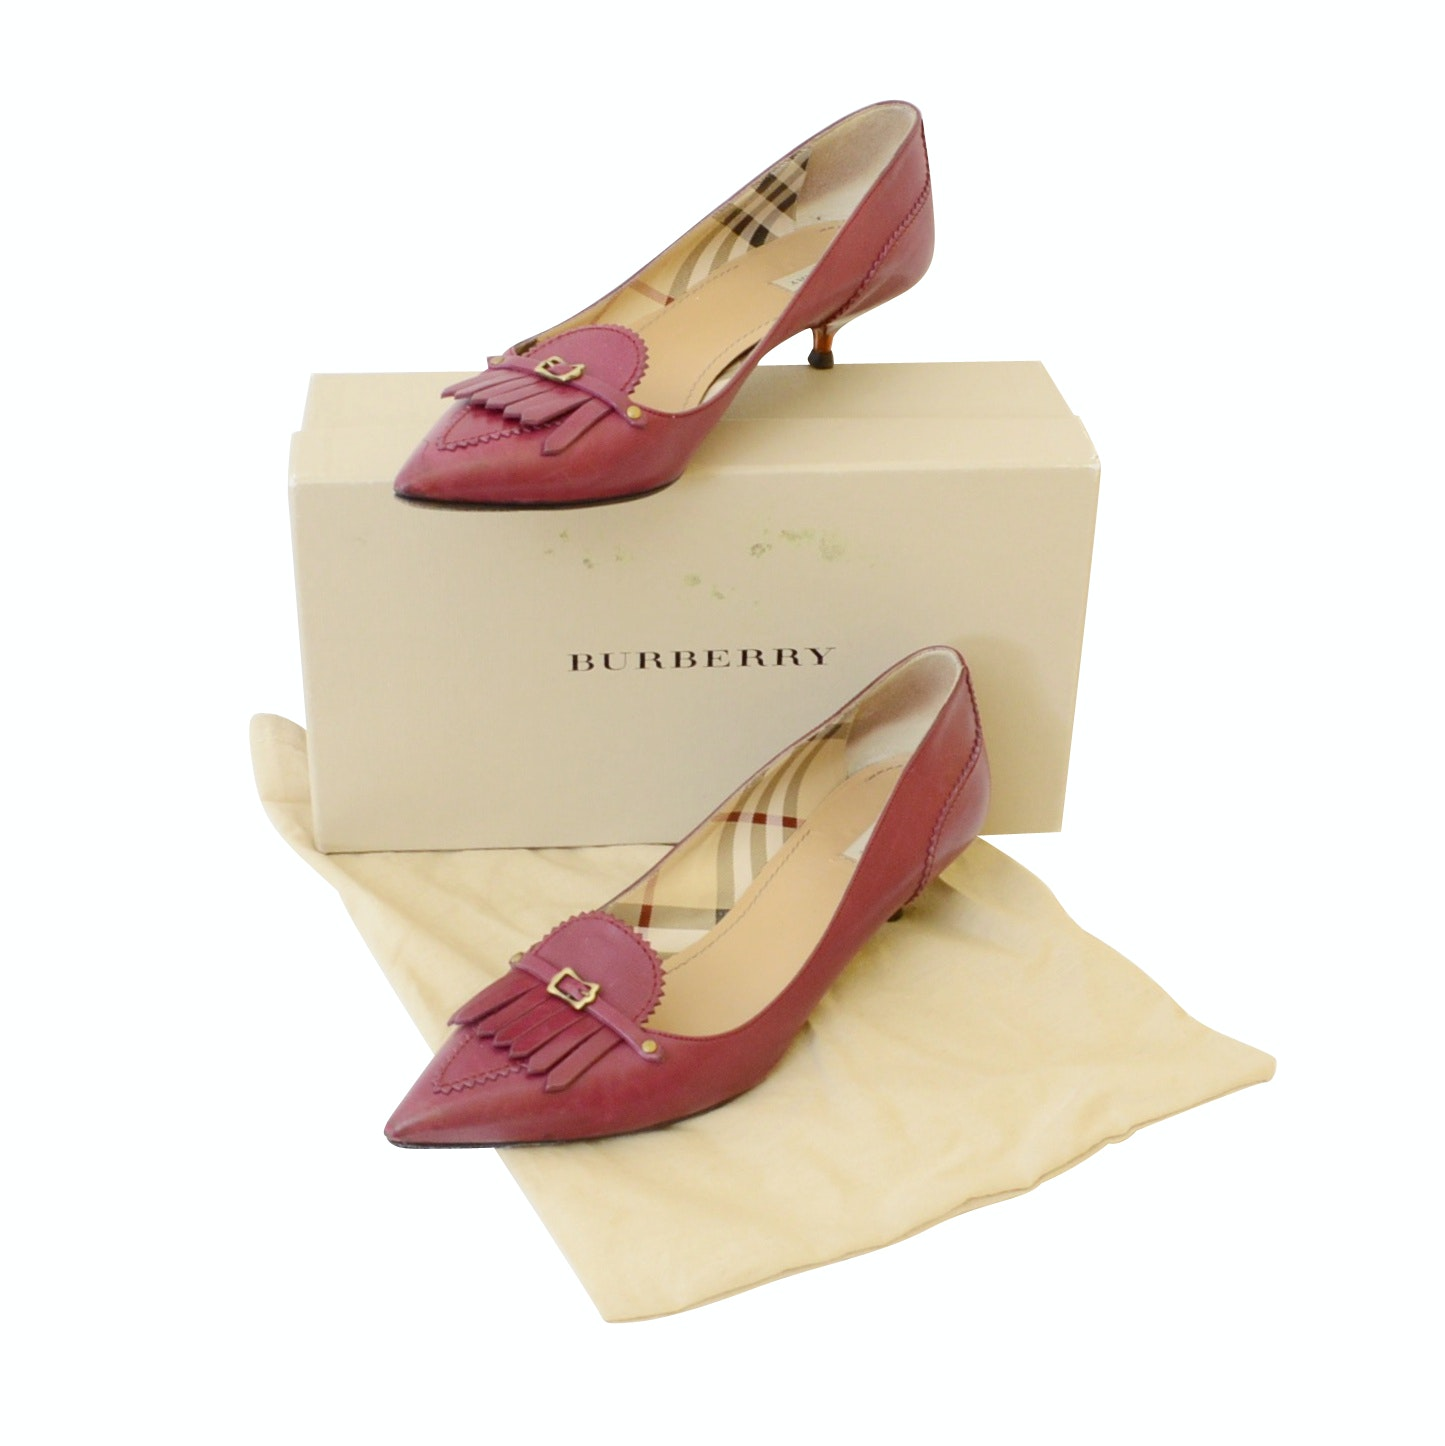 Women's Burberry Red Leather Pointed Kitten Heels and Salvatore Ferragama Shoes